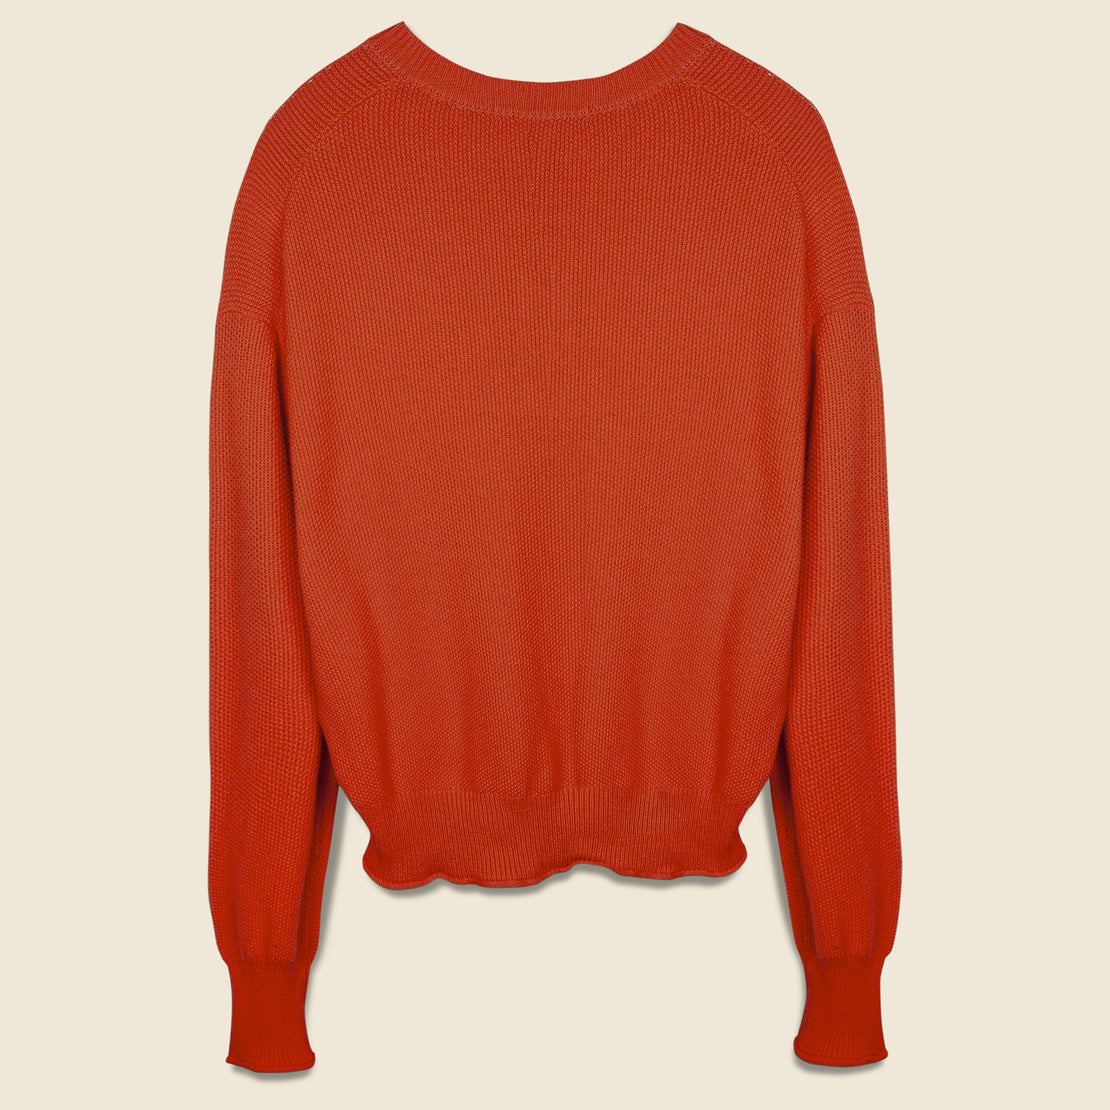 Boxy Seed Pocket Sweater - Flame Lily